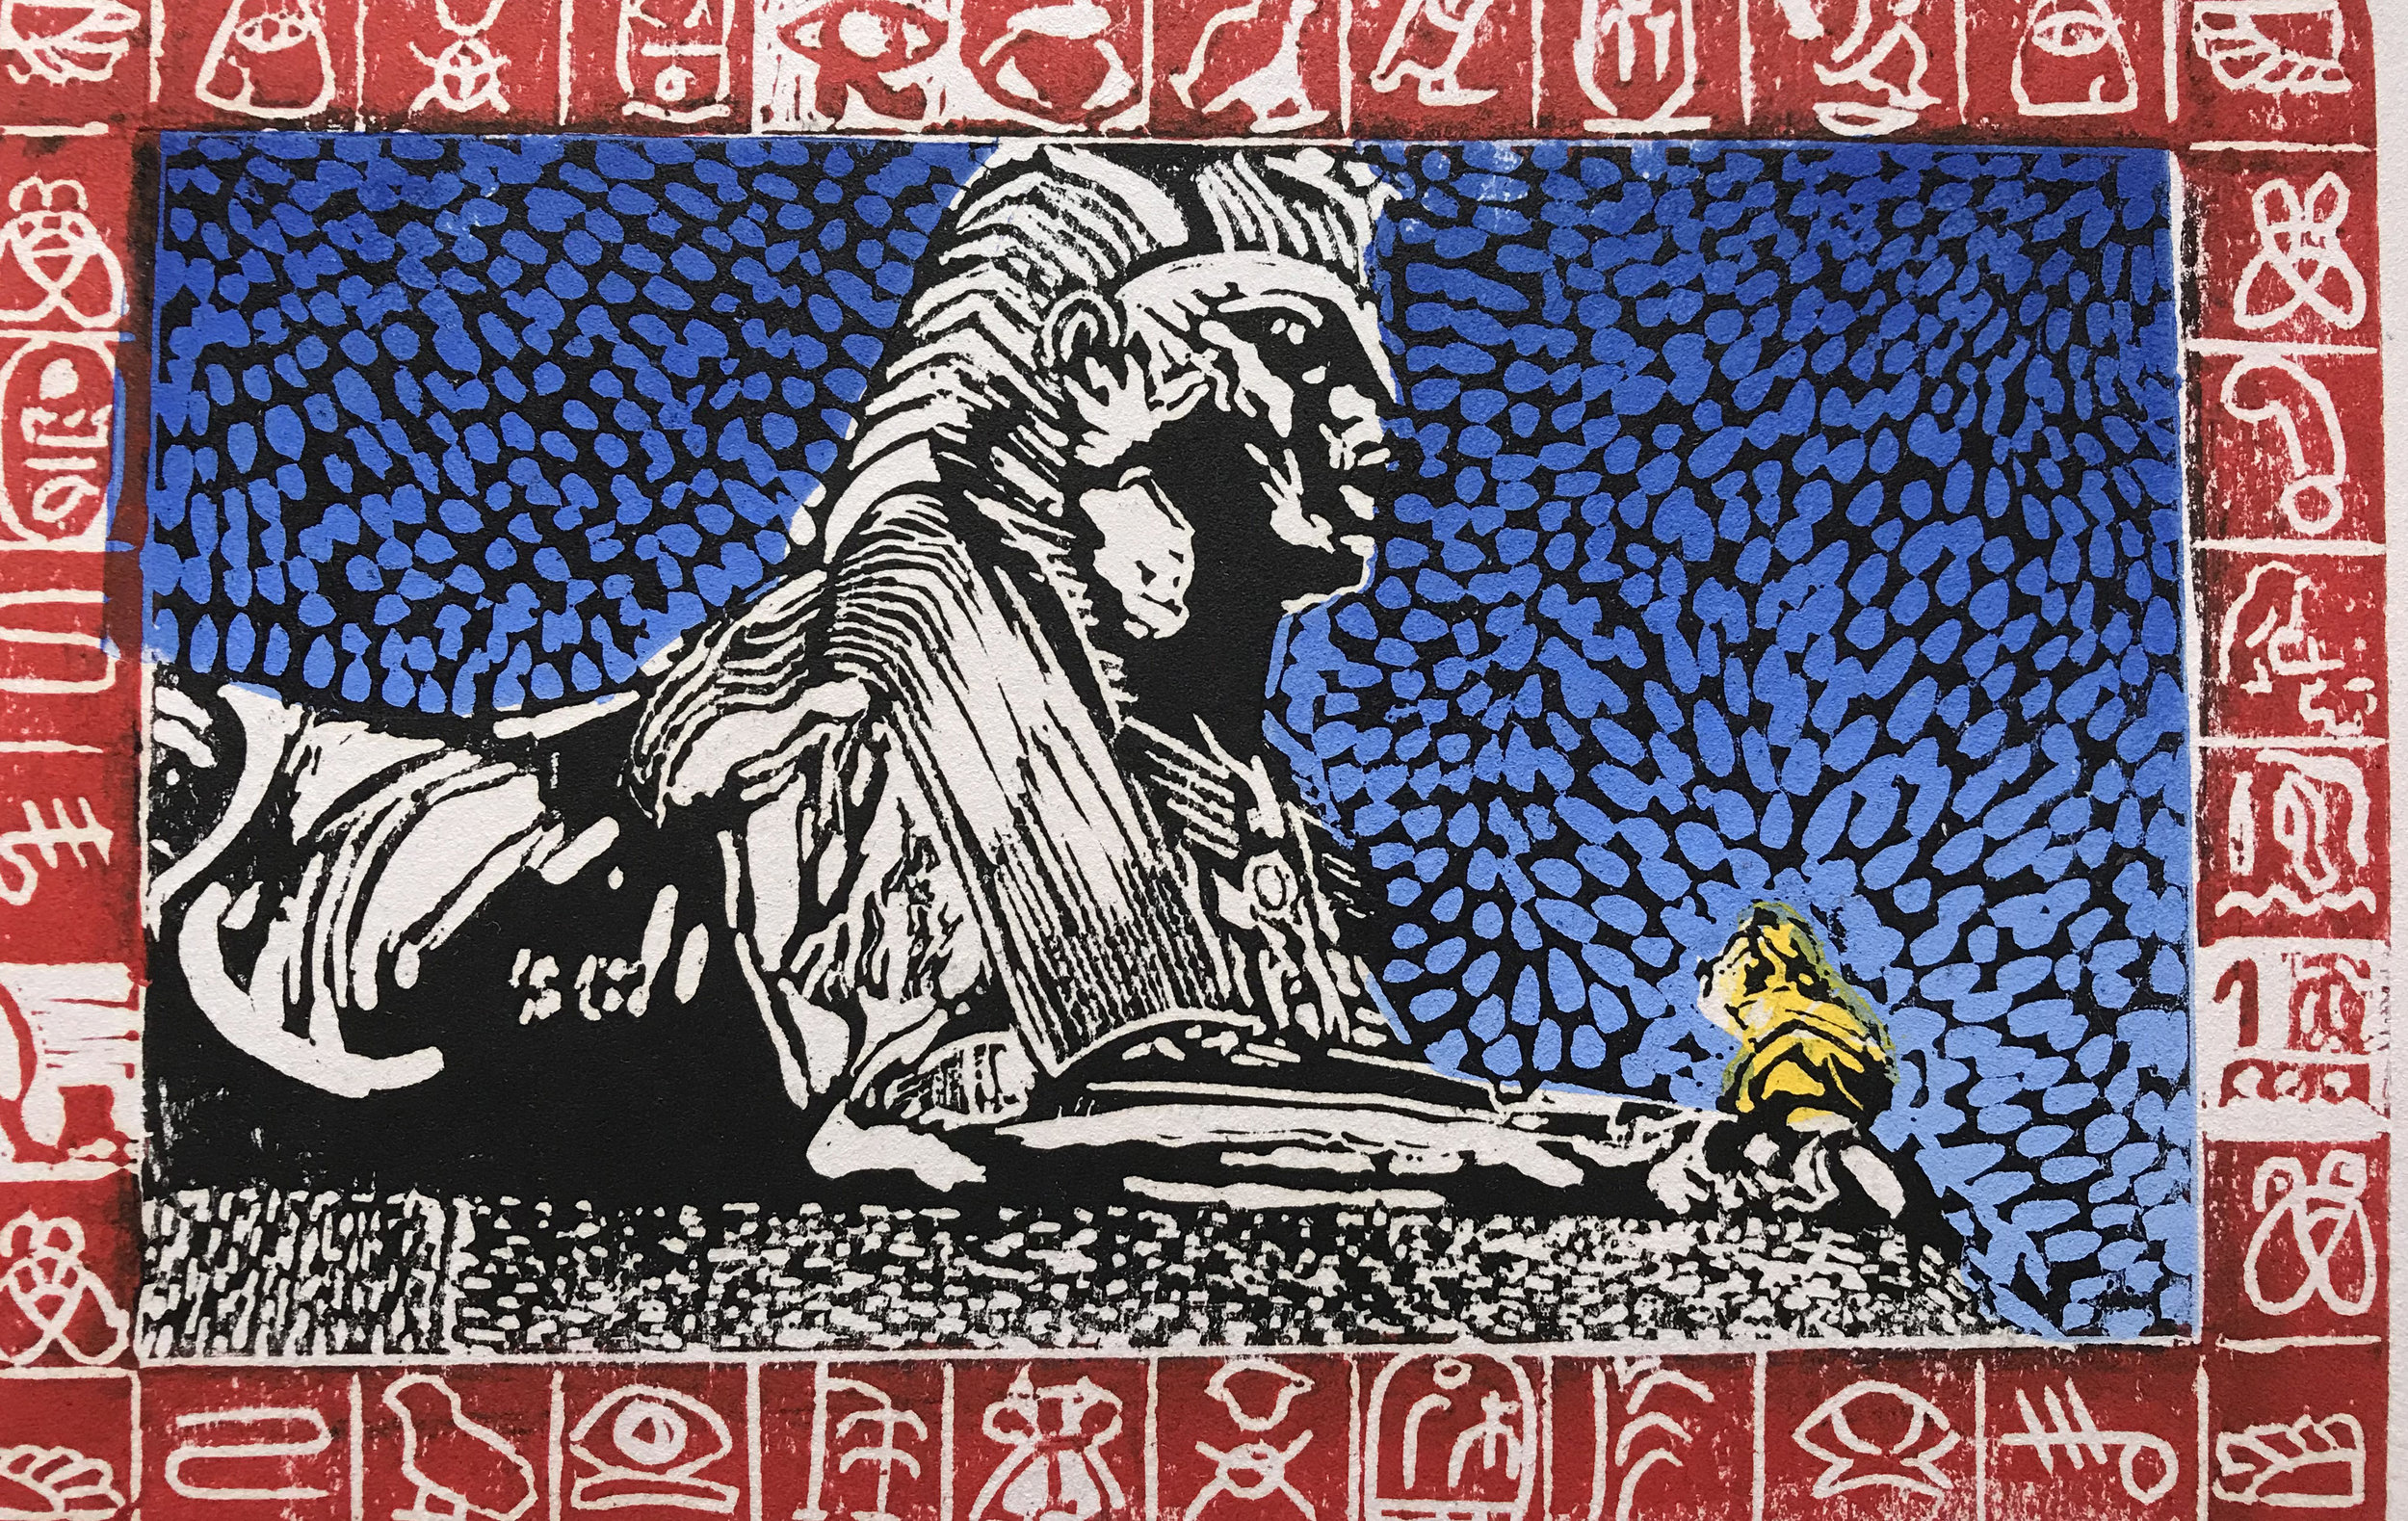 Sphinx and girl